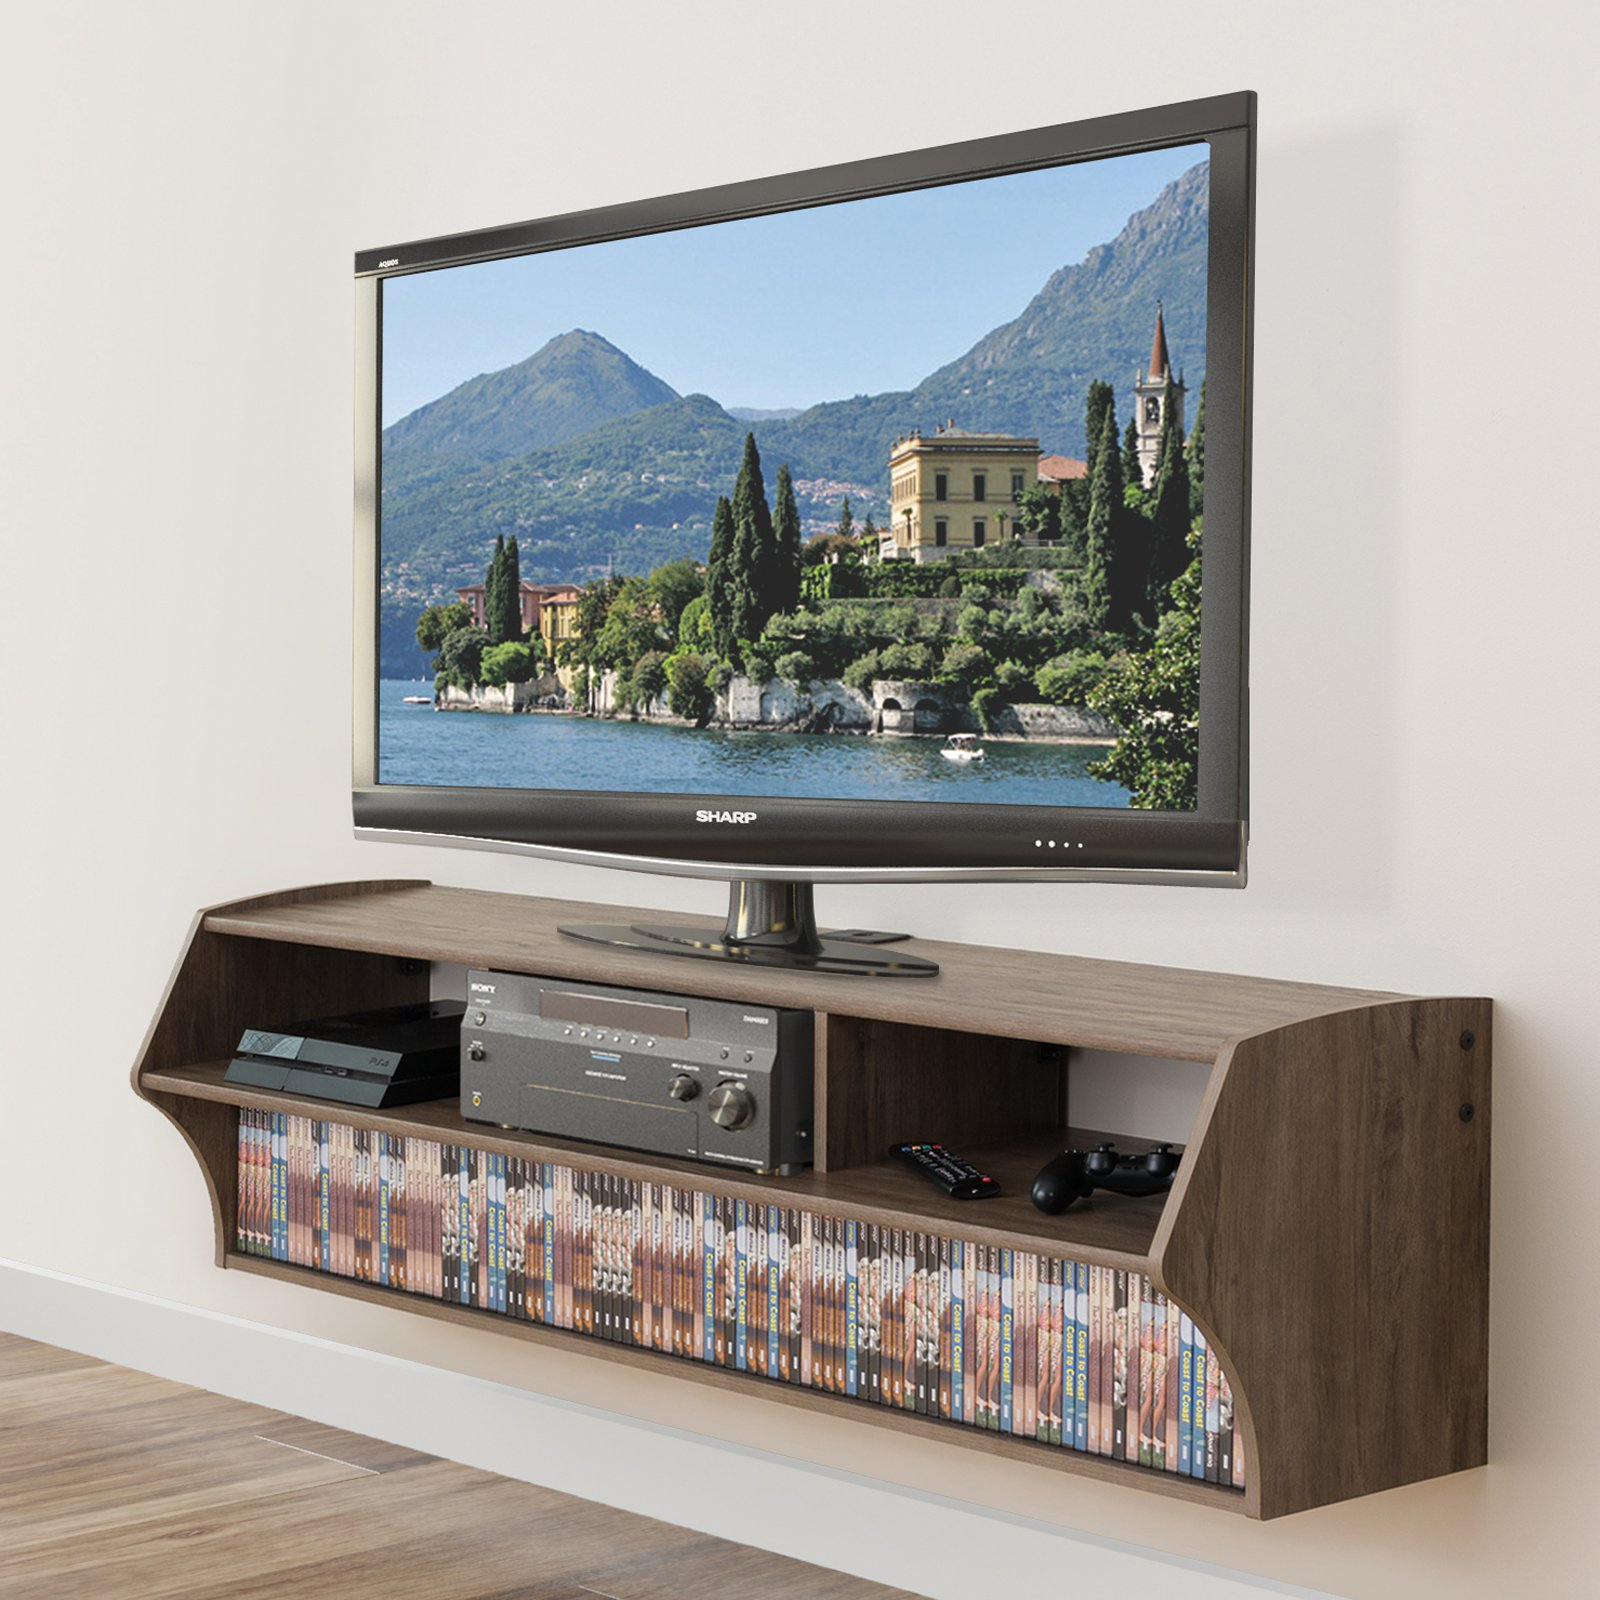 Prepac Altus Plus Wall Mounted TV Stand - Drifted Gray